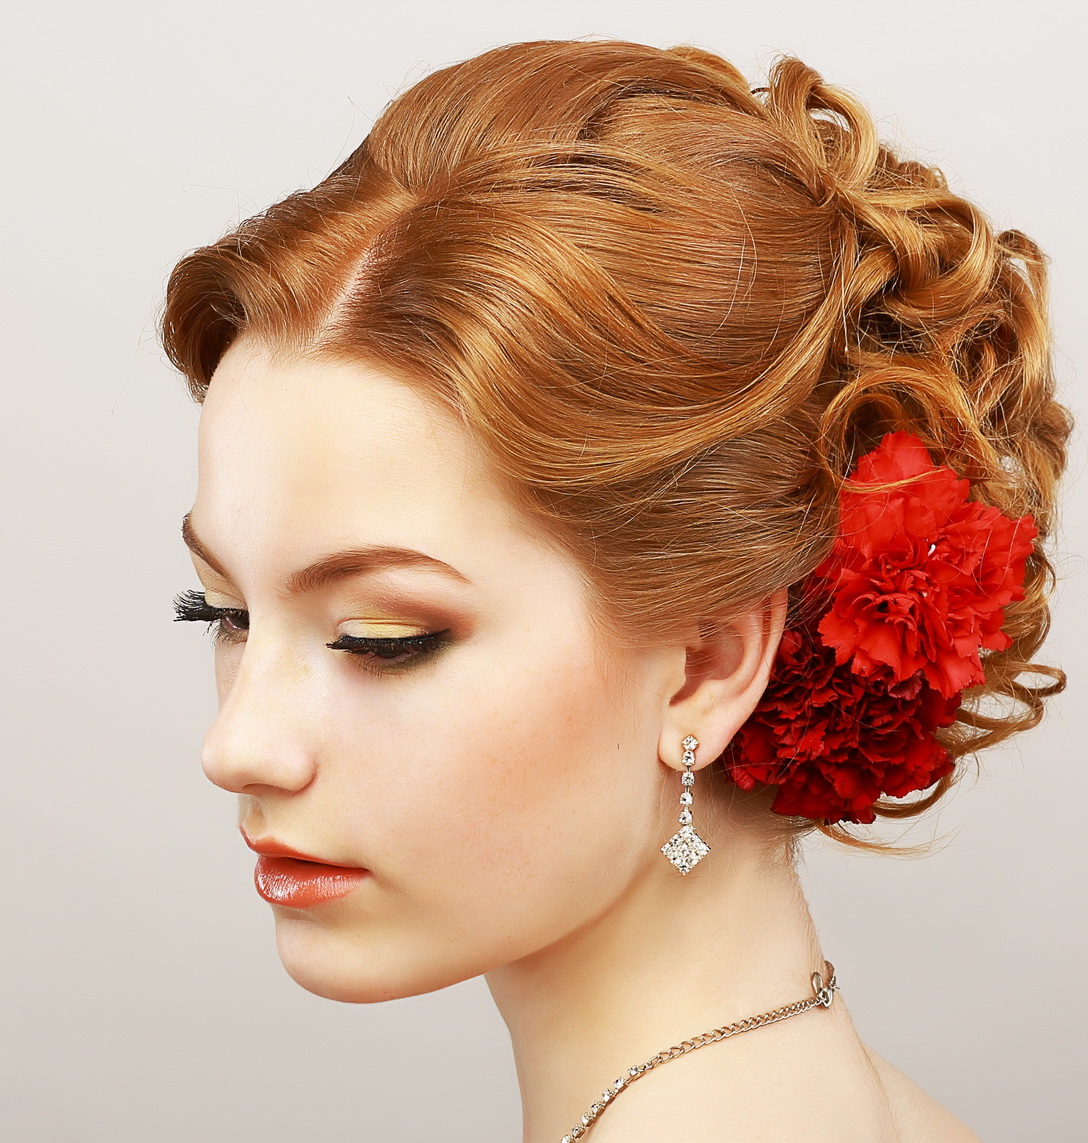 16 Easy Prom Hairstyles For Short And Medium Length Hair With Prom Short Hairstyles (View 10 of 25)